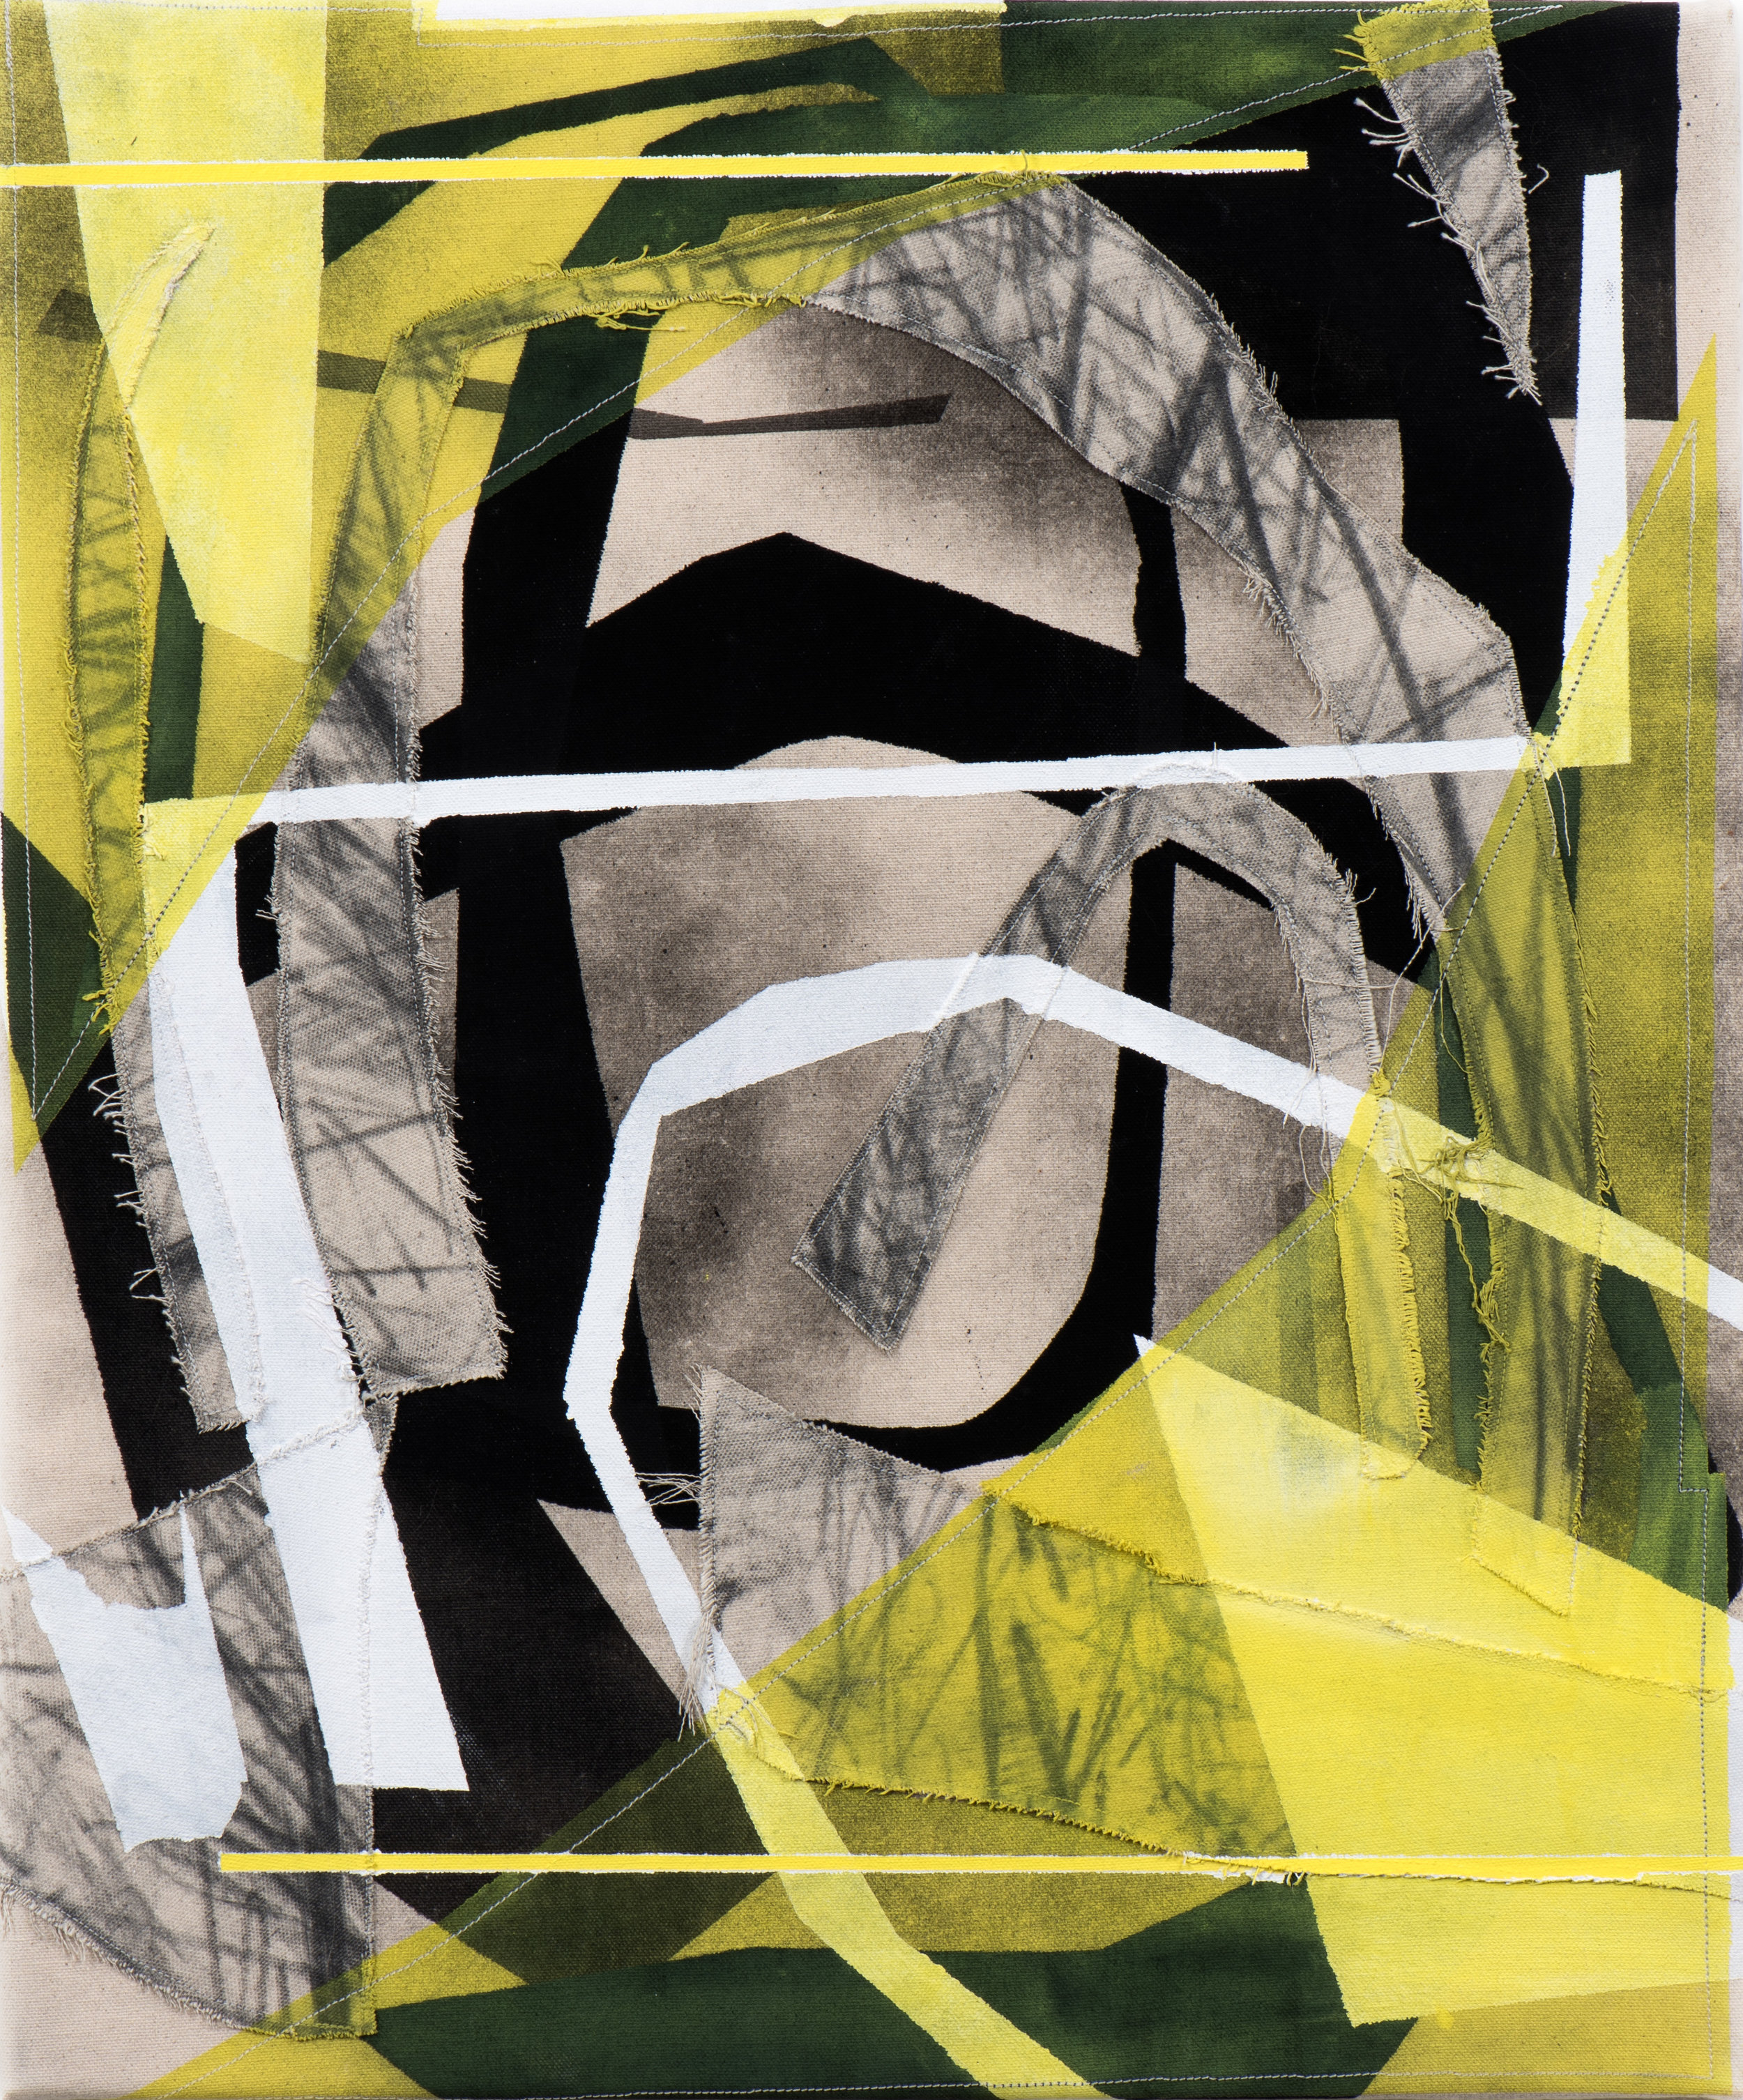 Christopher Iseri  Yellow Space (Bad Air) , 2018 Flashe, acrylic, graphite, and sewn canvas on canvas 20 x 24 inches